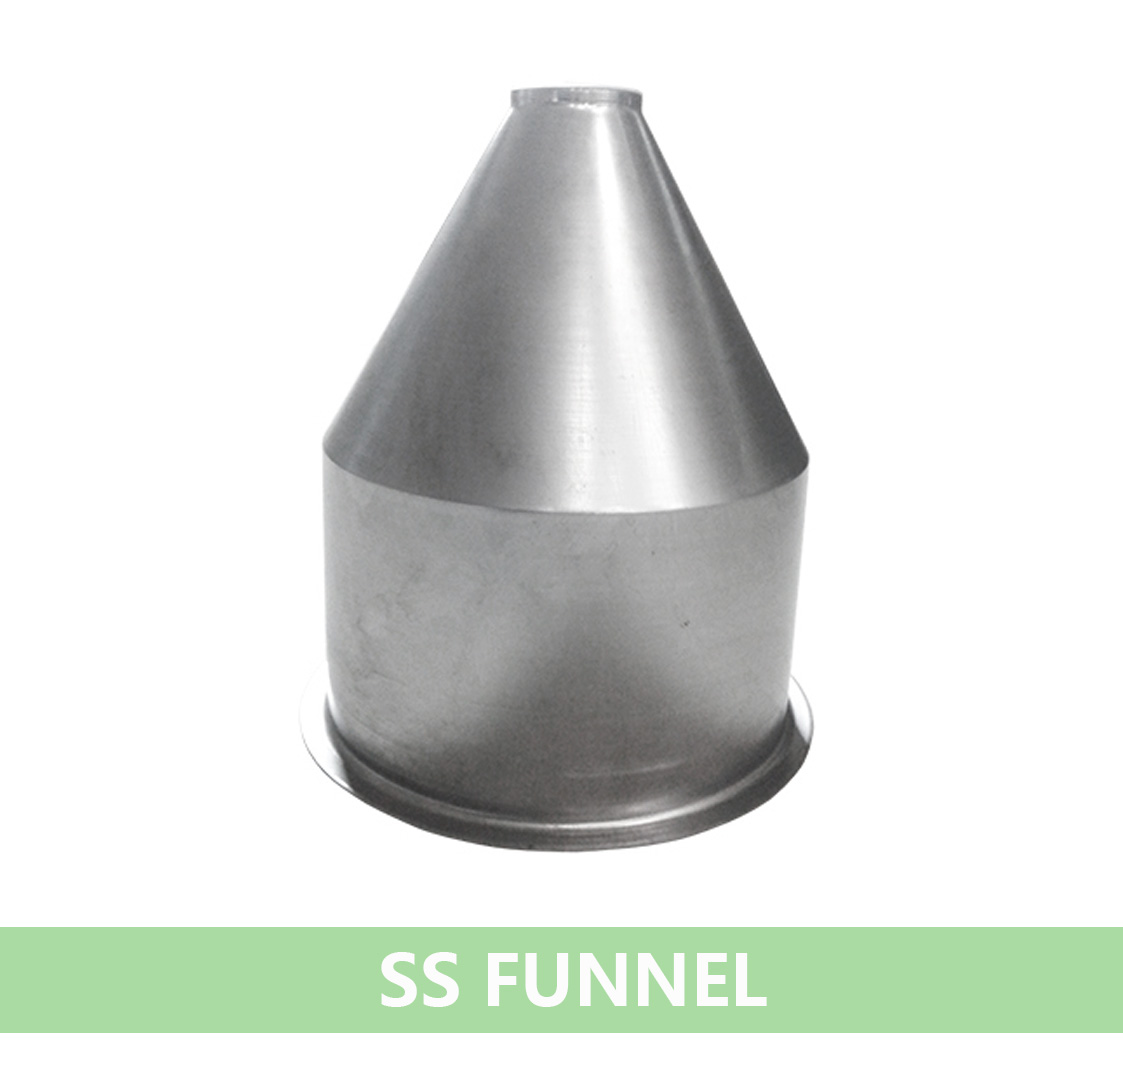 不銹鋼漏斗 Stainless Steel Funnel